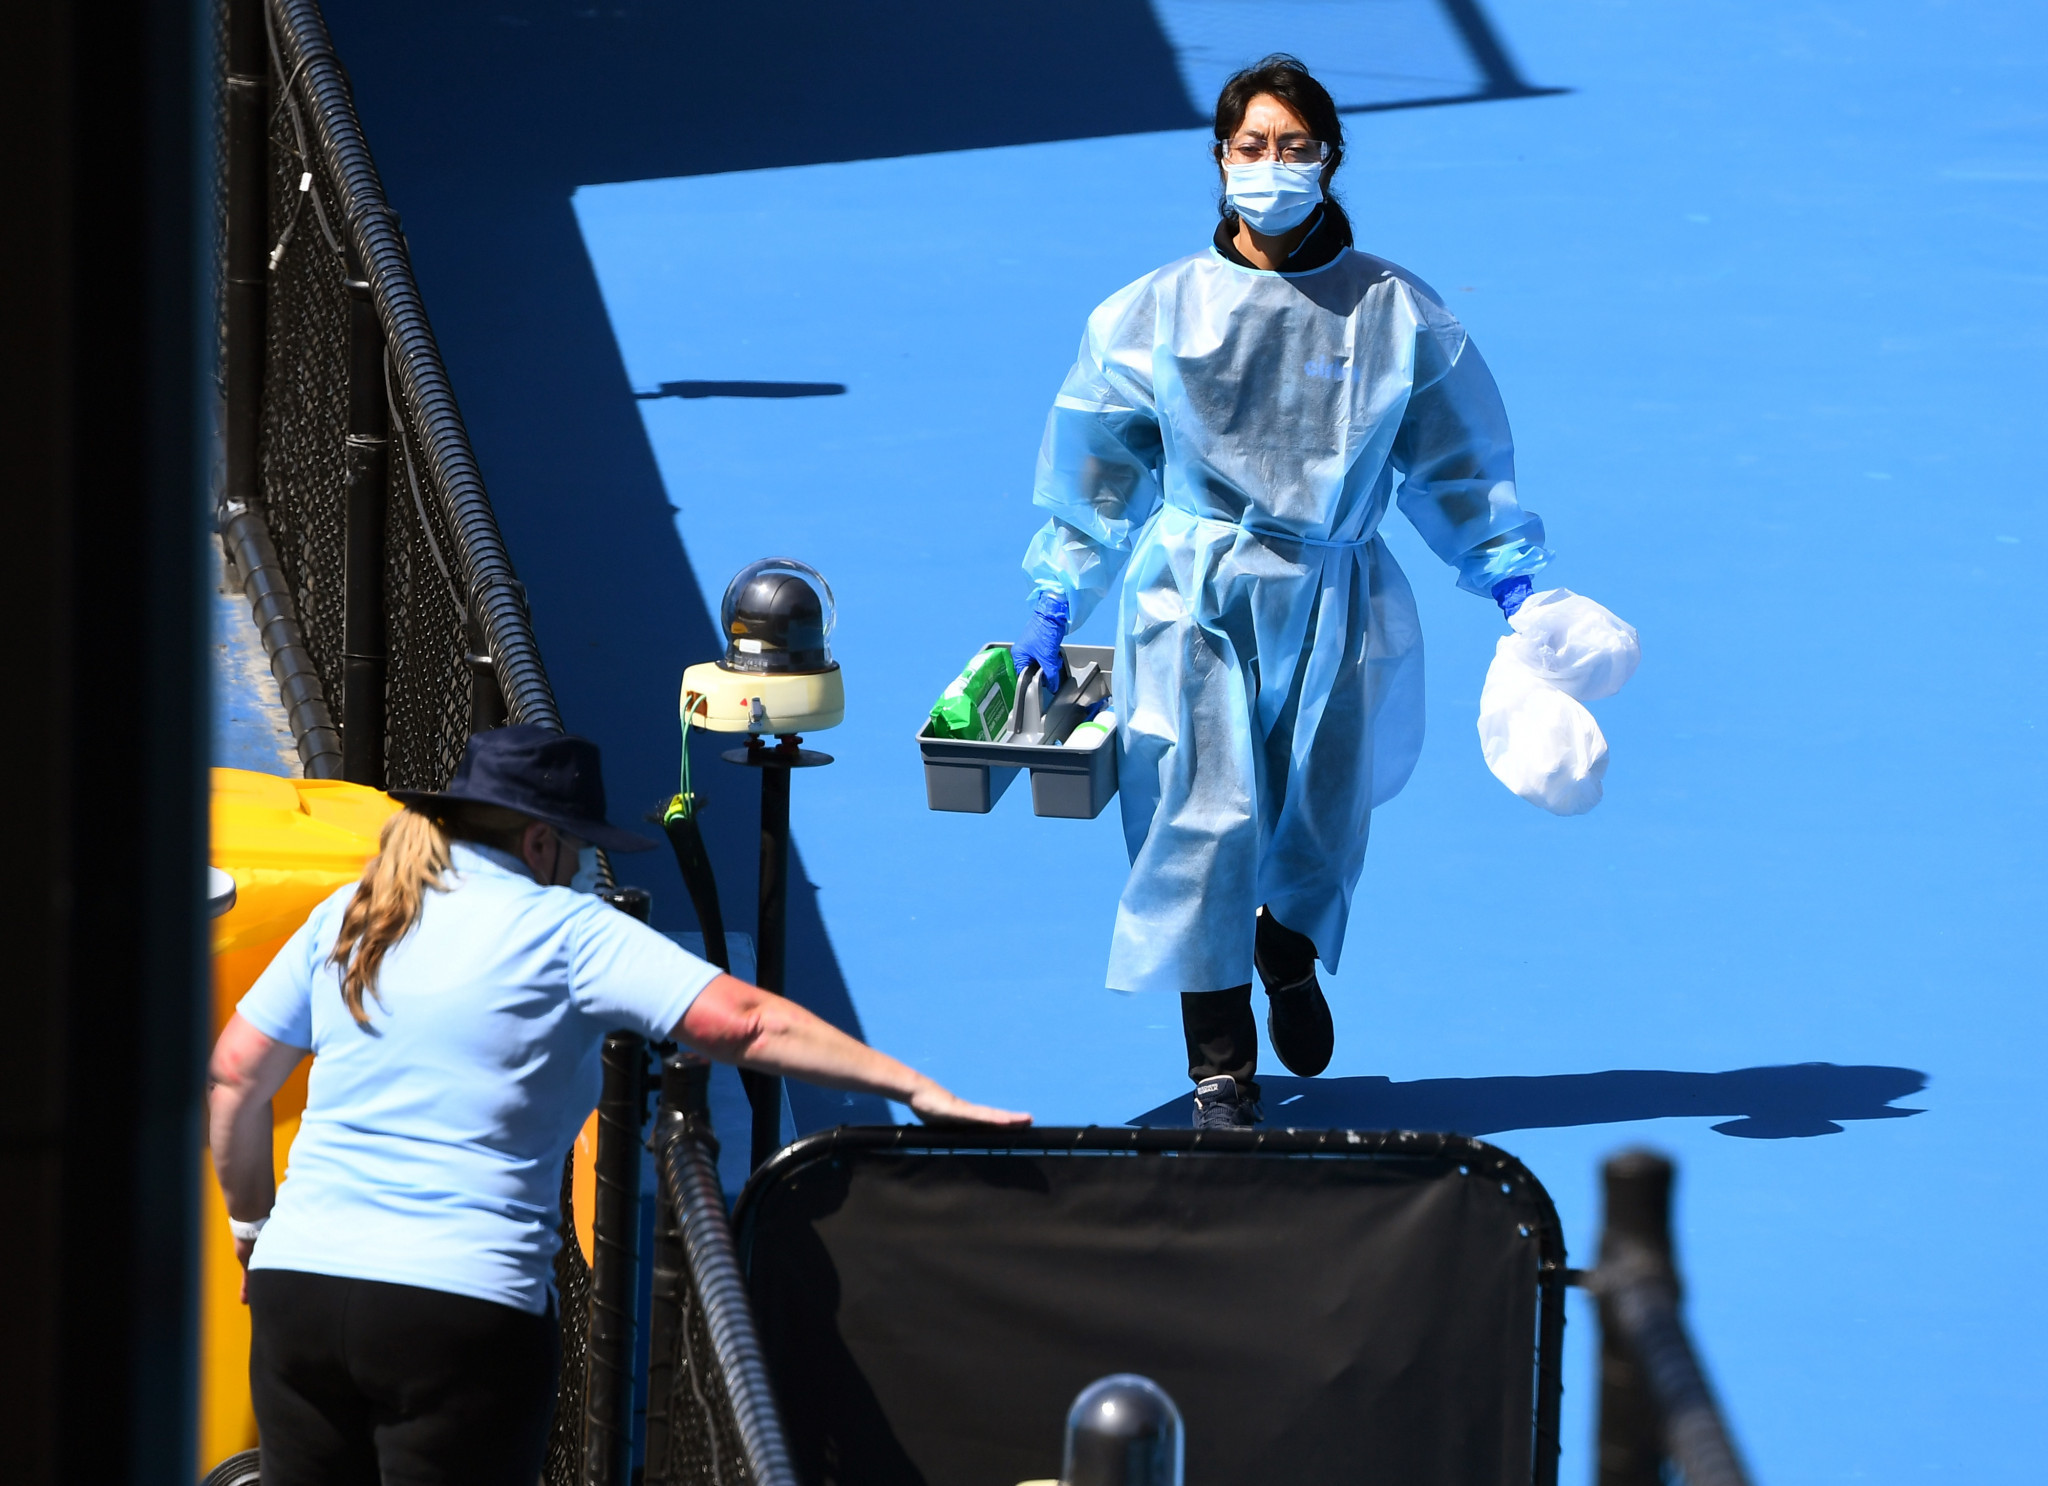 Strict anti-virus measures are in place in Melbourne ahead of the Australian Open